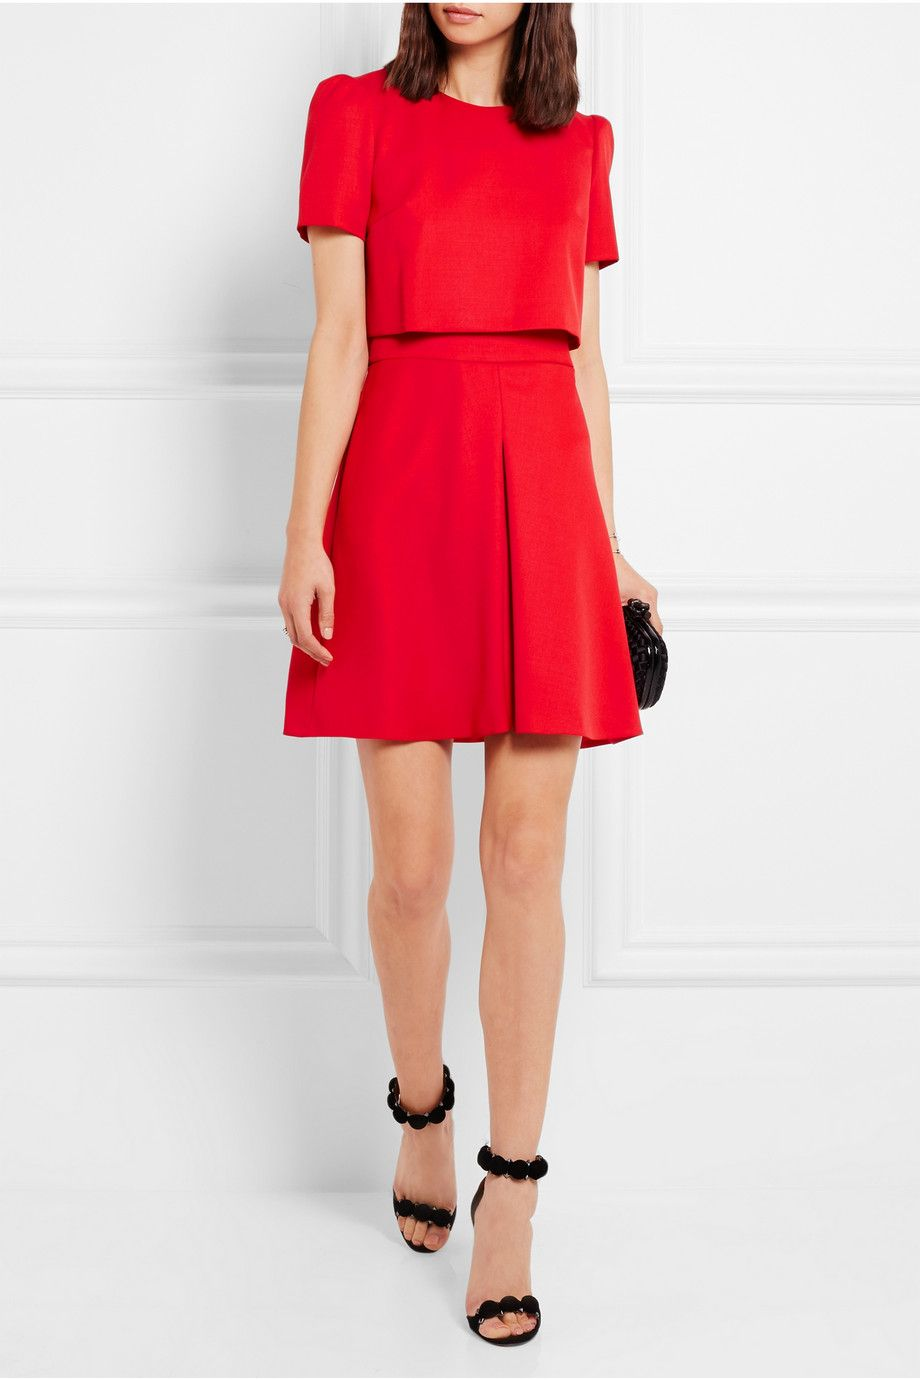 Sale Purchase Crêpe minidress Alexander McQueen New Styles Online Free Shipping Footaction Free Shipping Cost Best Place Cheap Price lg1sEfn